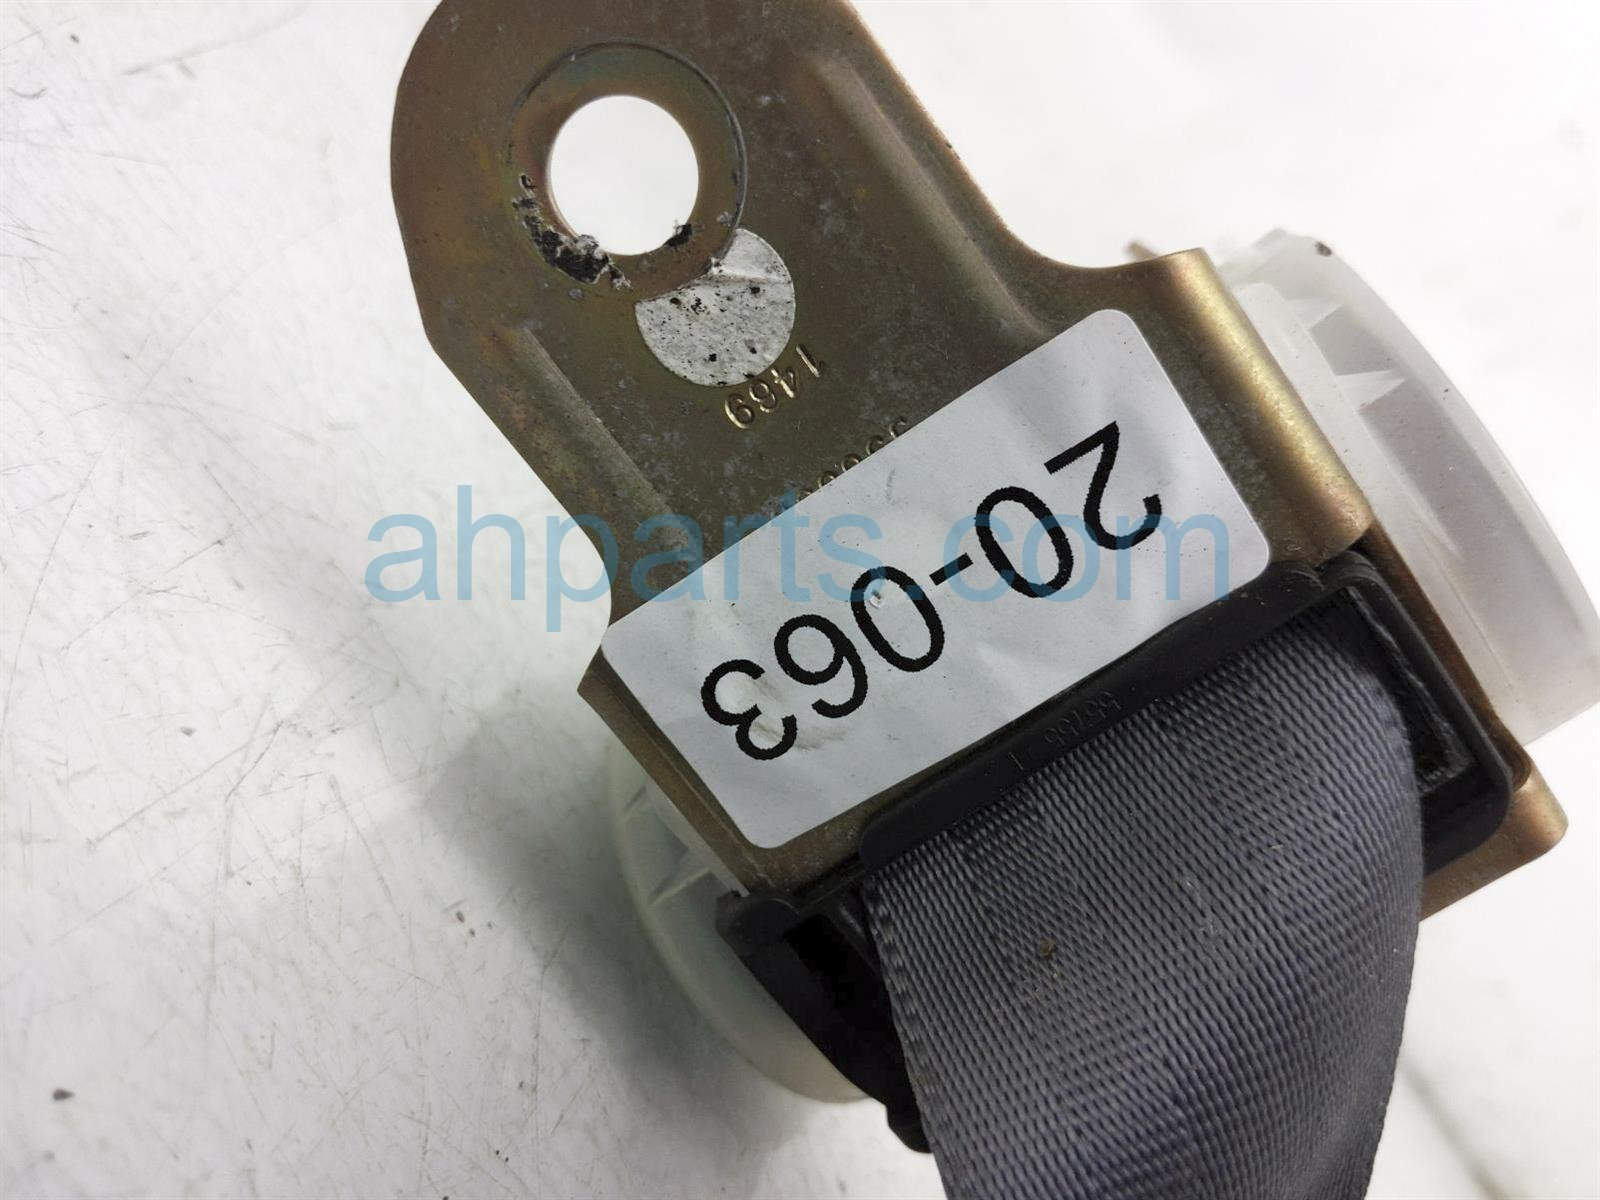 2001 Toyota Camry Rear 2nd Row Passenger Seat Belt   Grey 73360 AA040 B0 Replacement